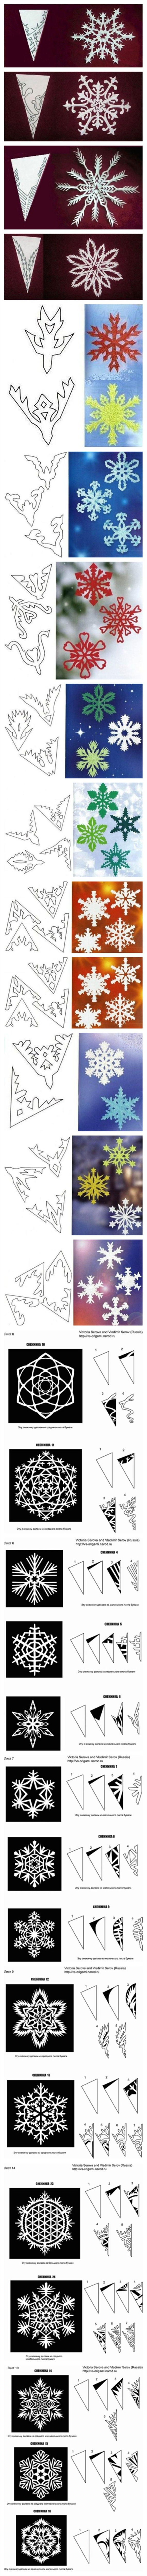 How to Make Excellent Paper Snowflakes by joybx: Beyond the basics!  #DIY #Paper_Snowflakes #joybx